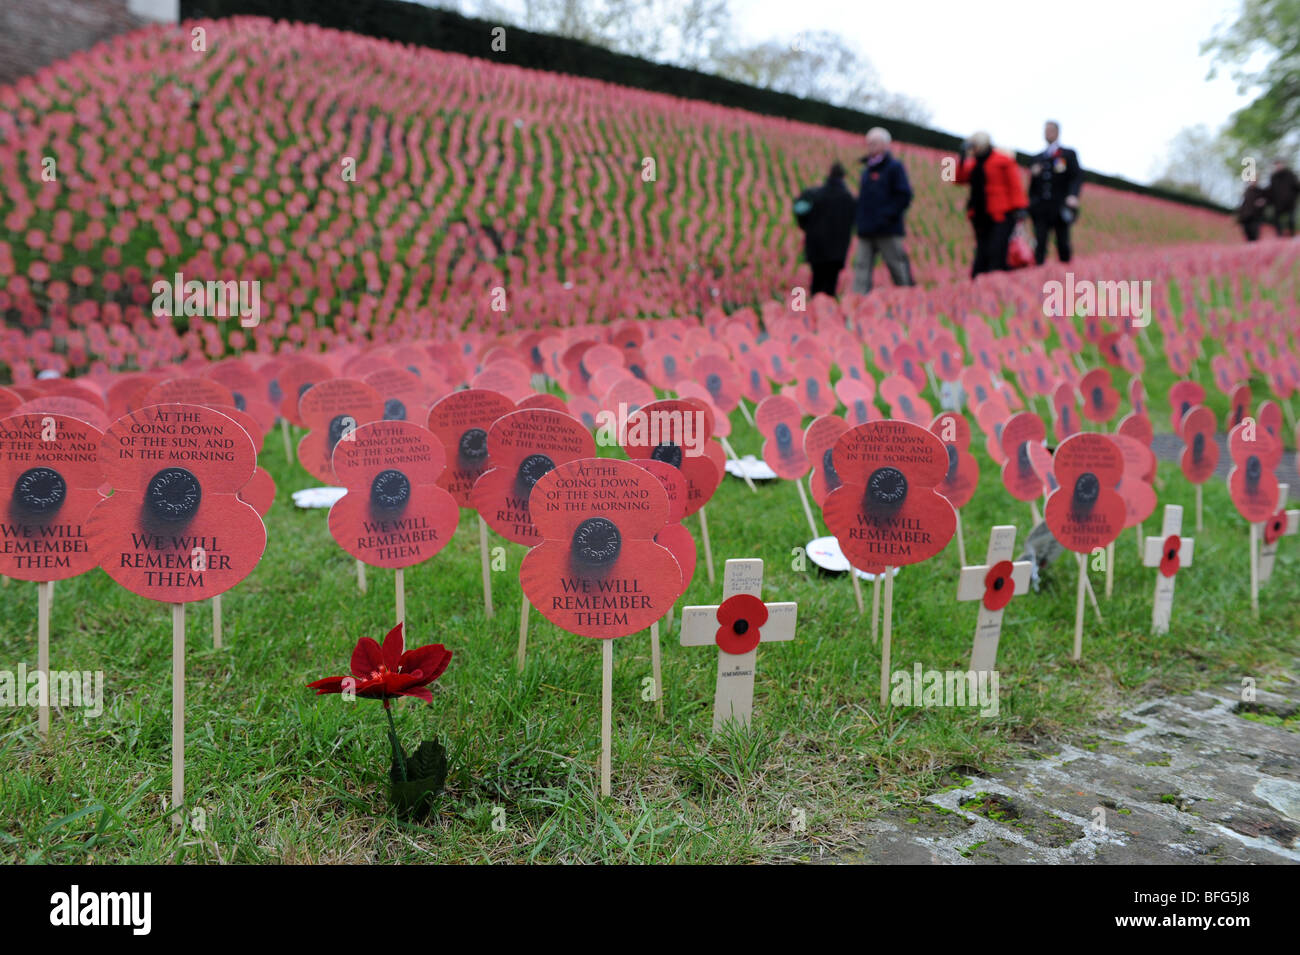 Thousands of paper poppies on Remembrance Day at Ypres now called Leper in Flanders Belgium - Stock Image